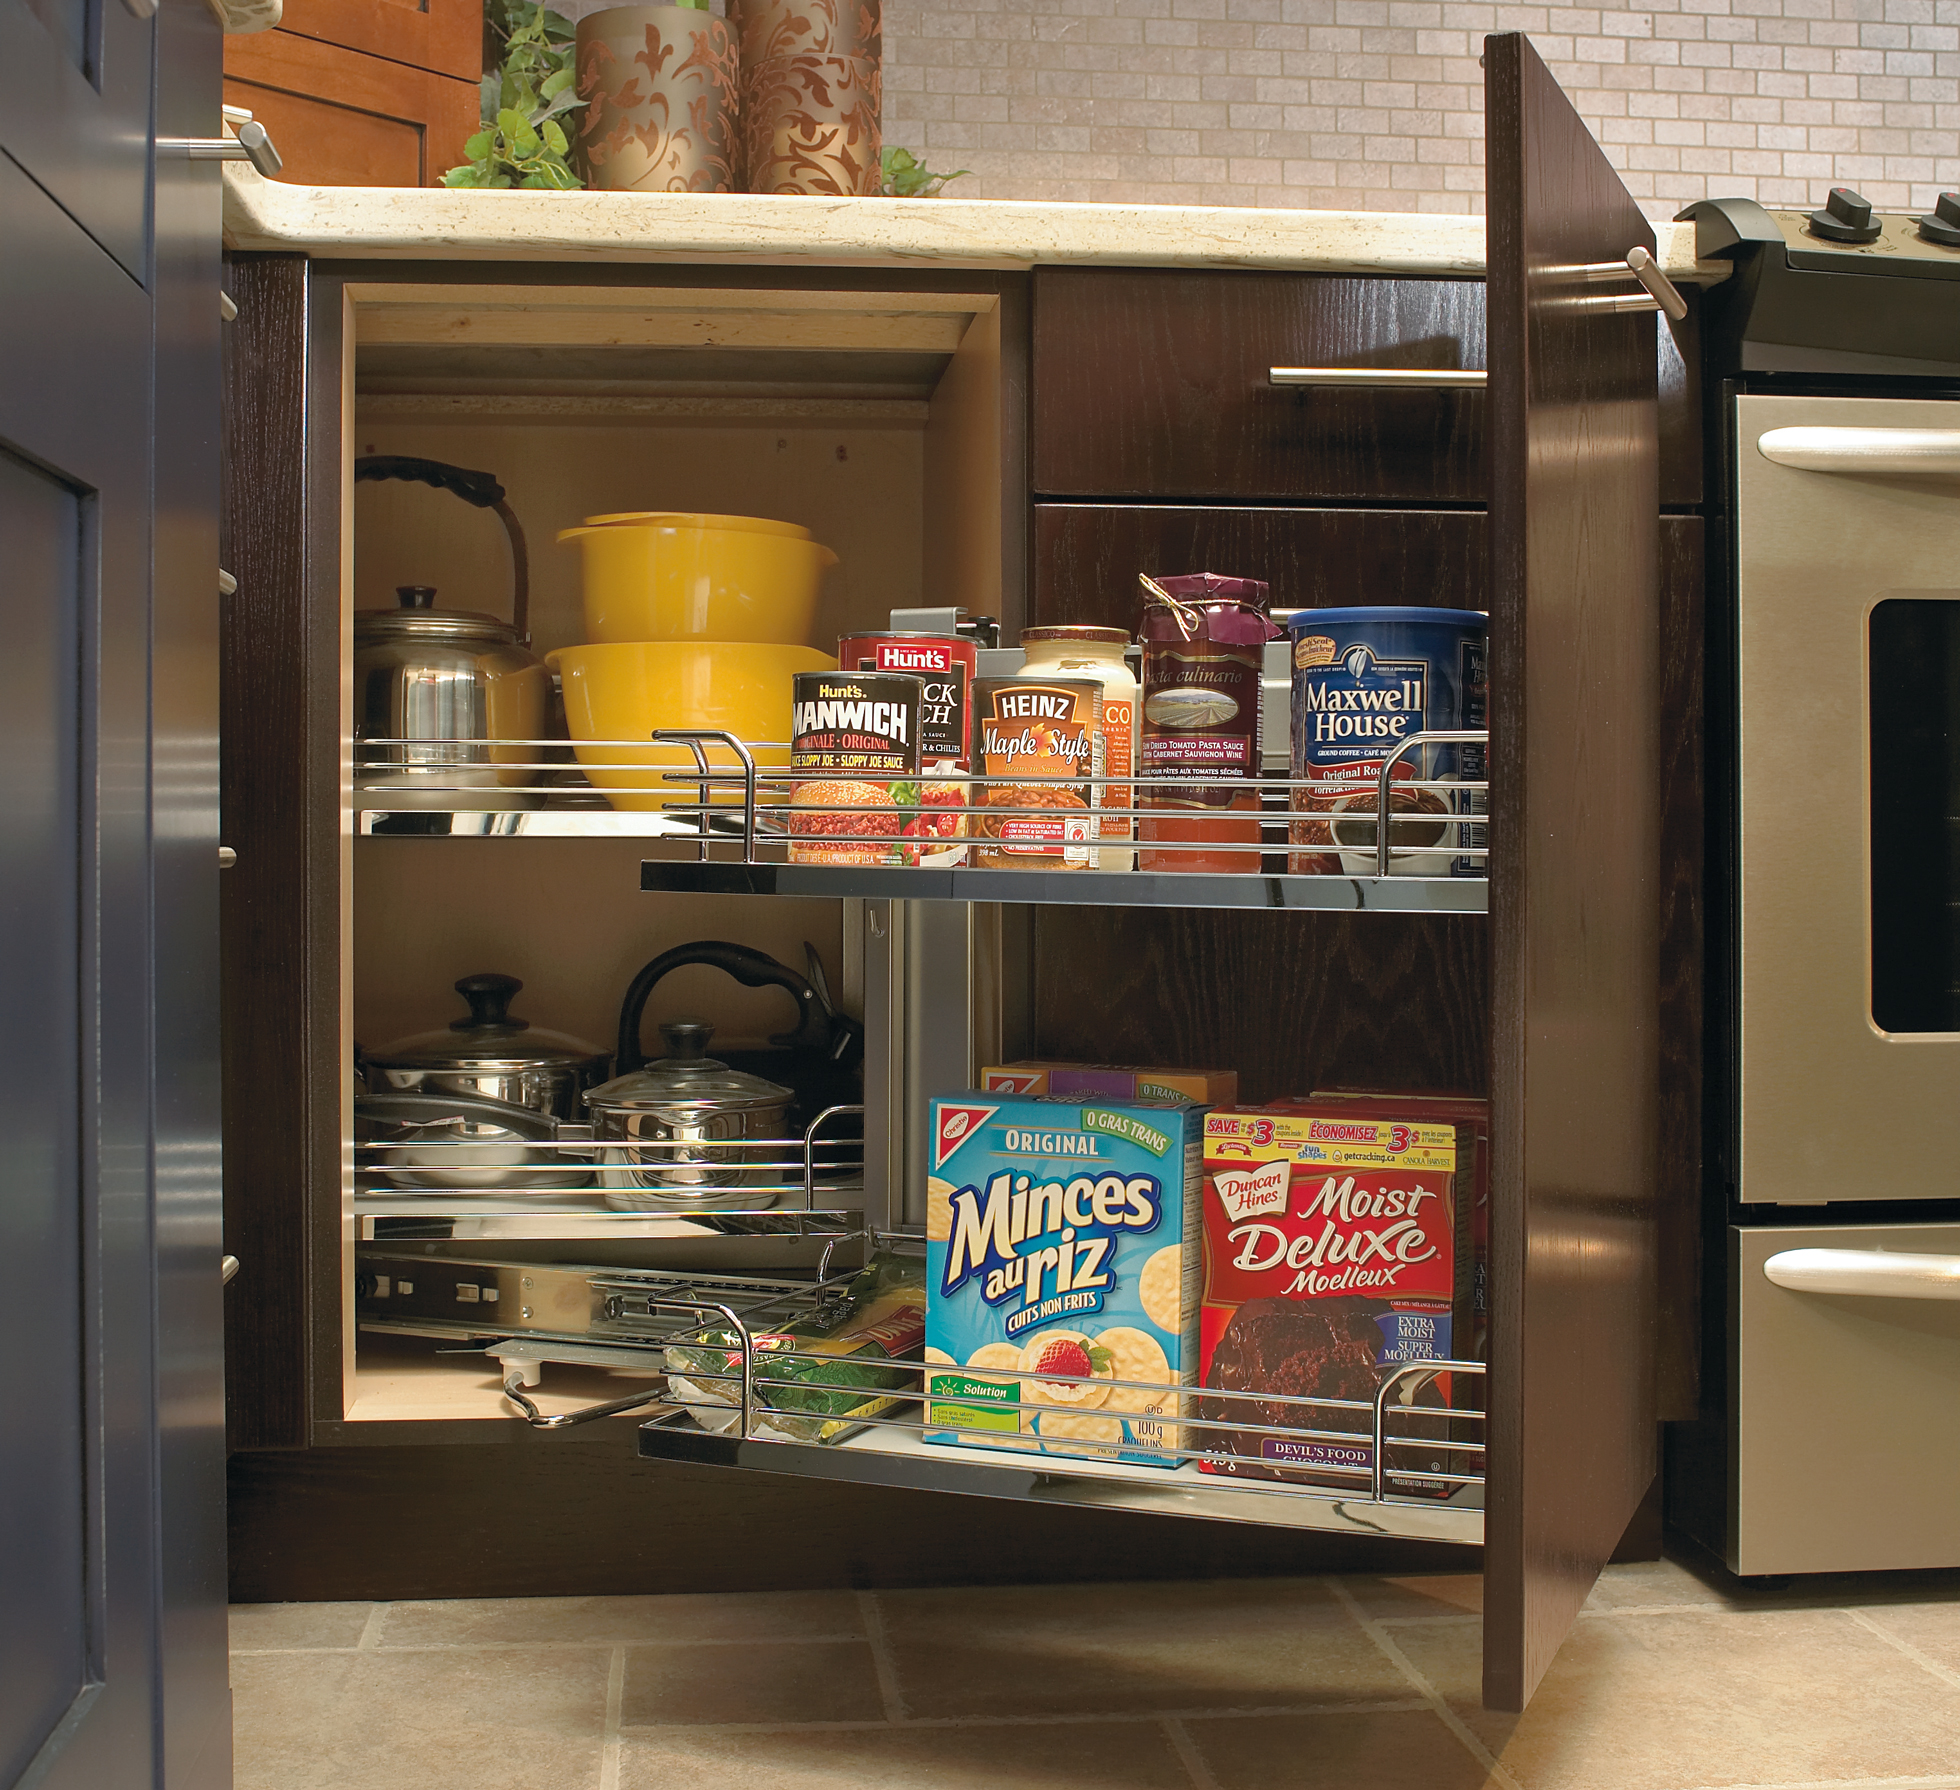 Pull-out cabinets hold food items in a kitchen